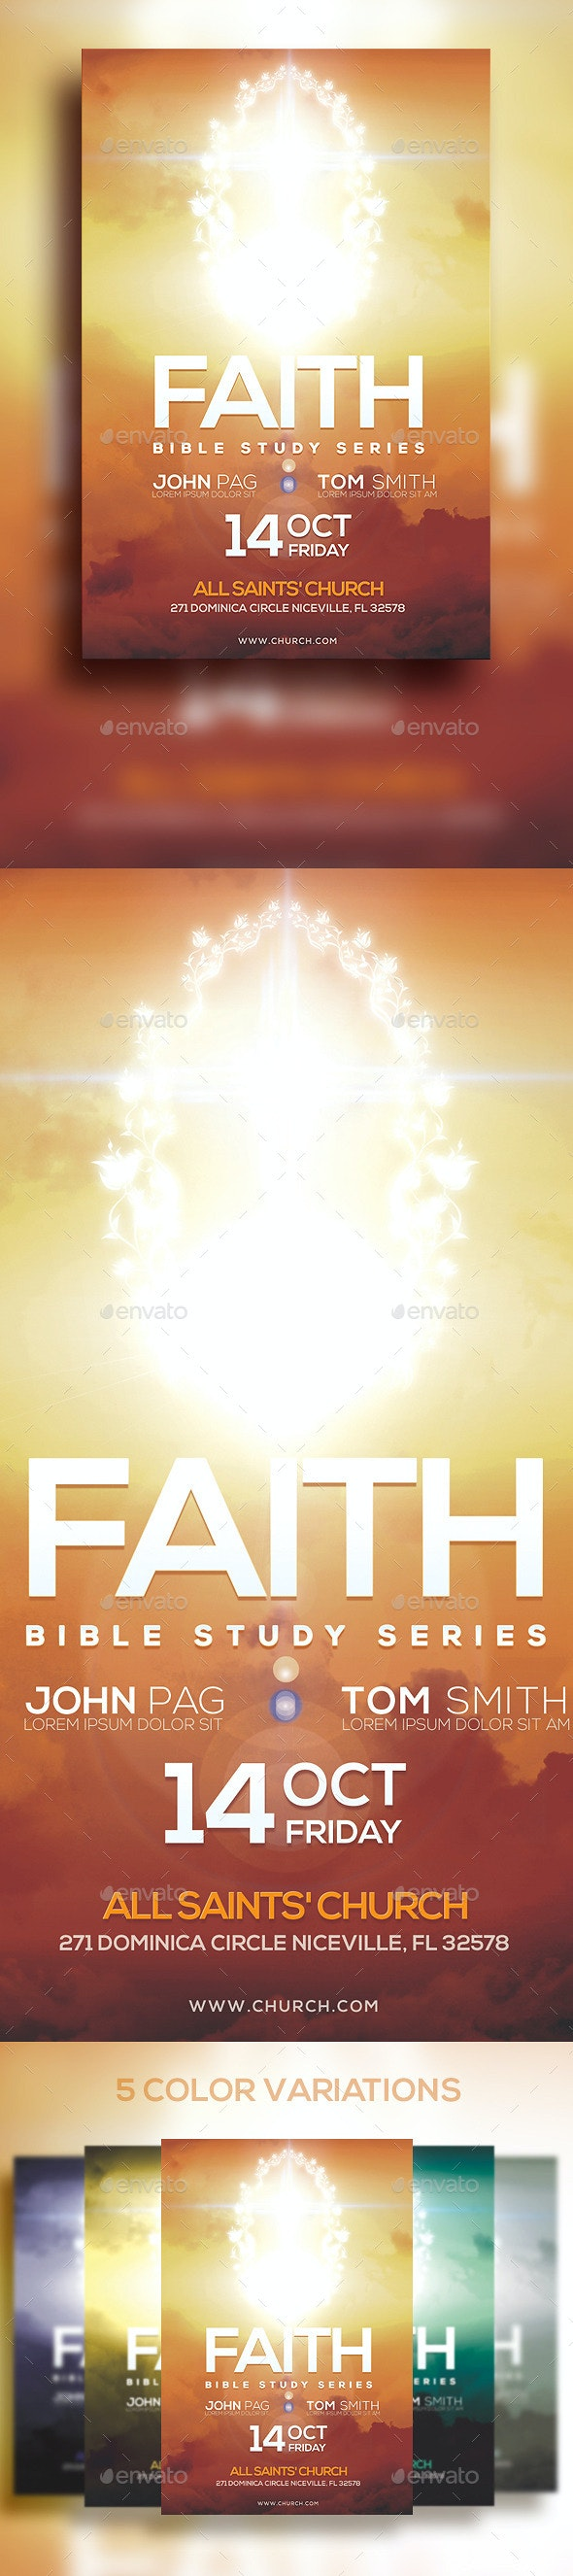 Faith Bible Study Series - Church Flyers